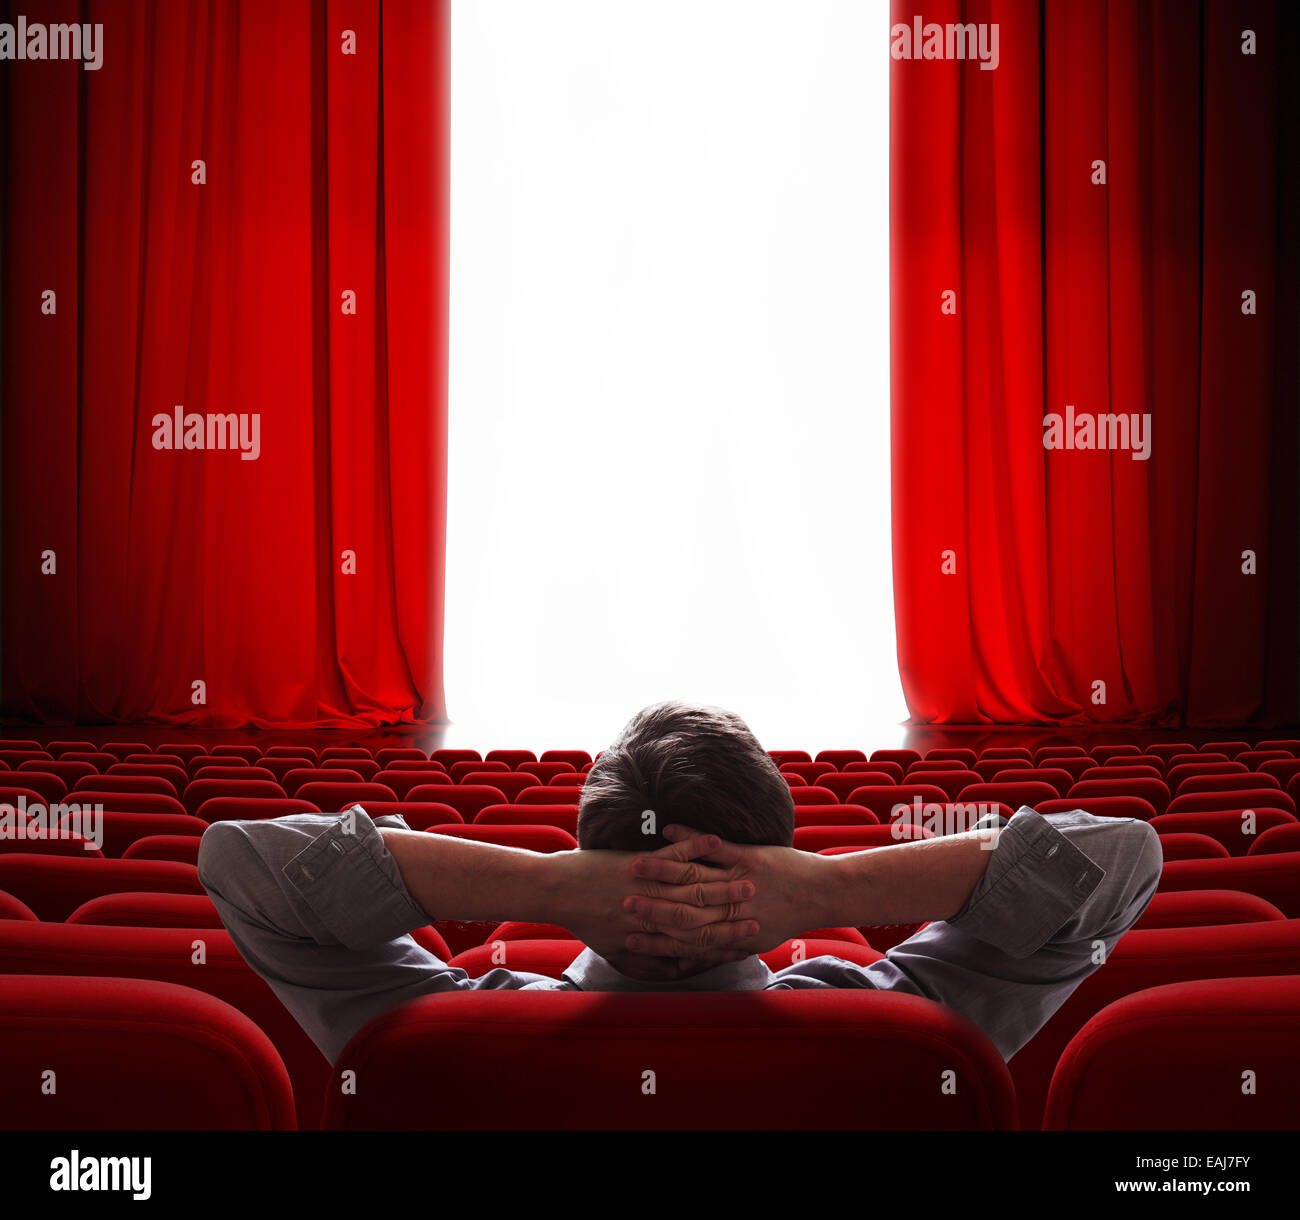 cinema screen red curtains opening for vip person - Stock Image